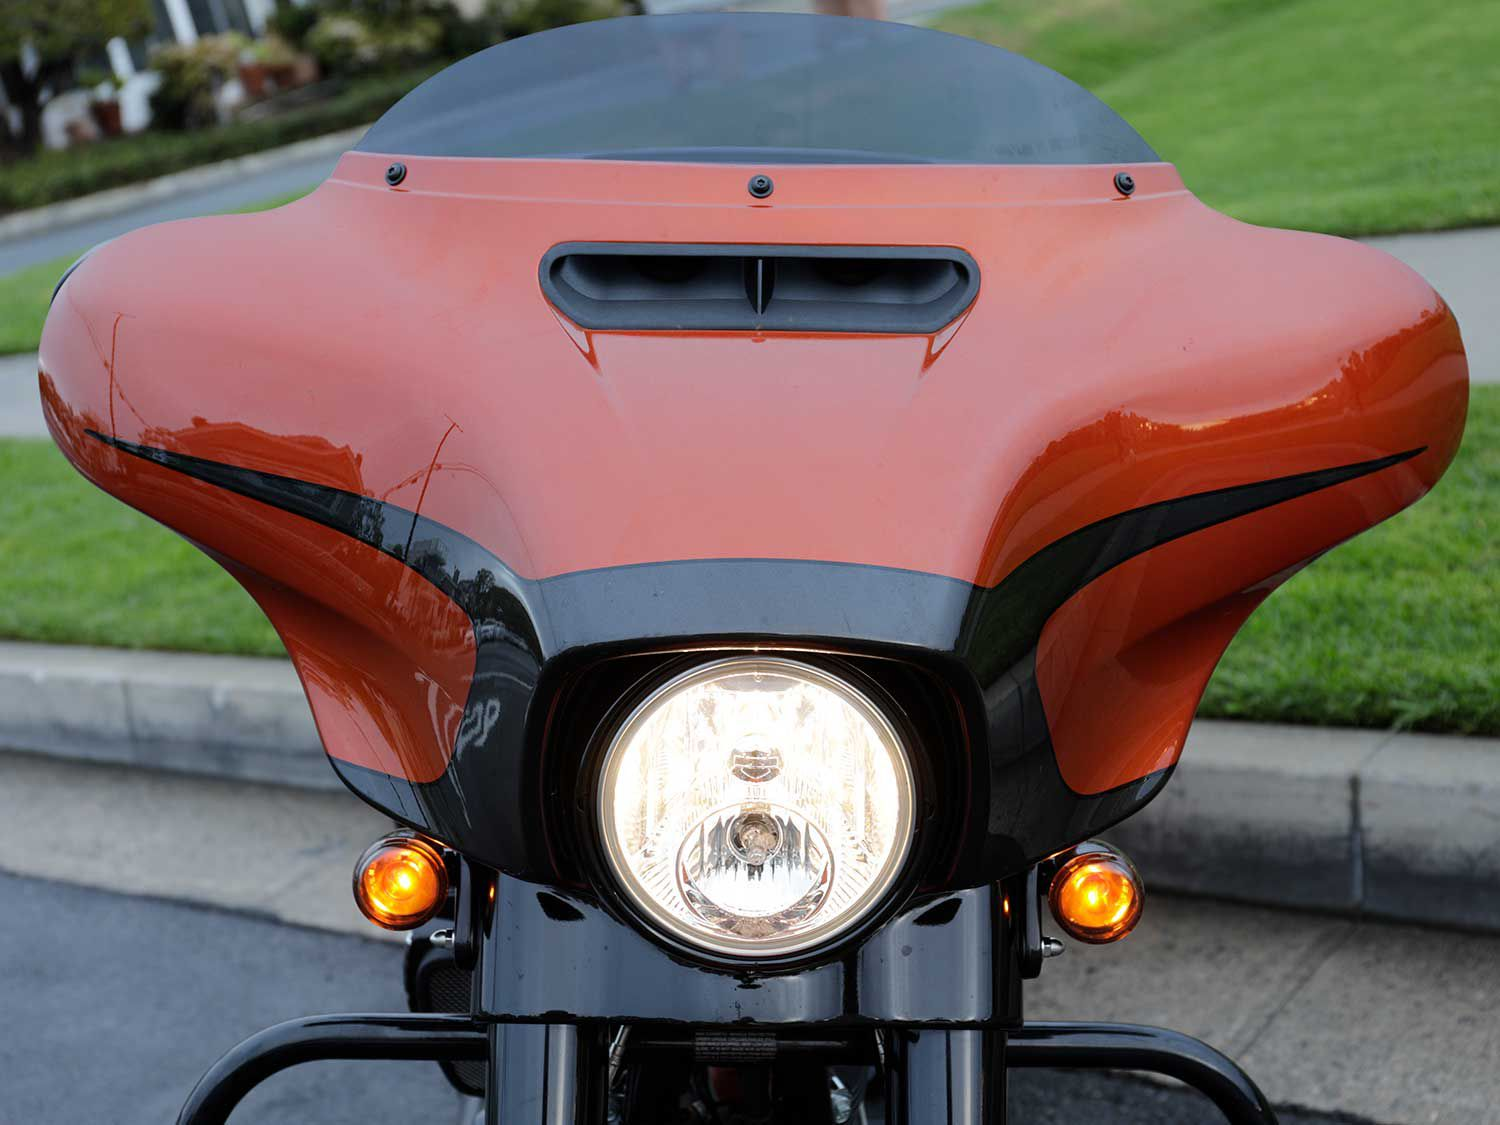 The Street Glide Special's batwing fairing is a key styling feature. Unlike the Road Glide's fixed fairing, this component moves with the handlebar.